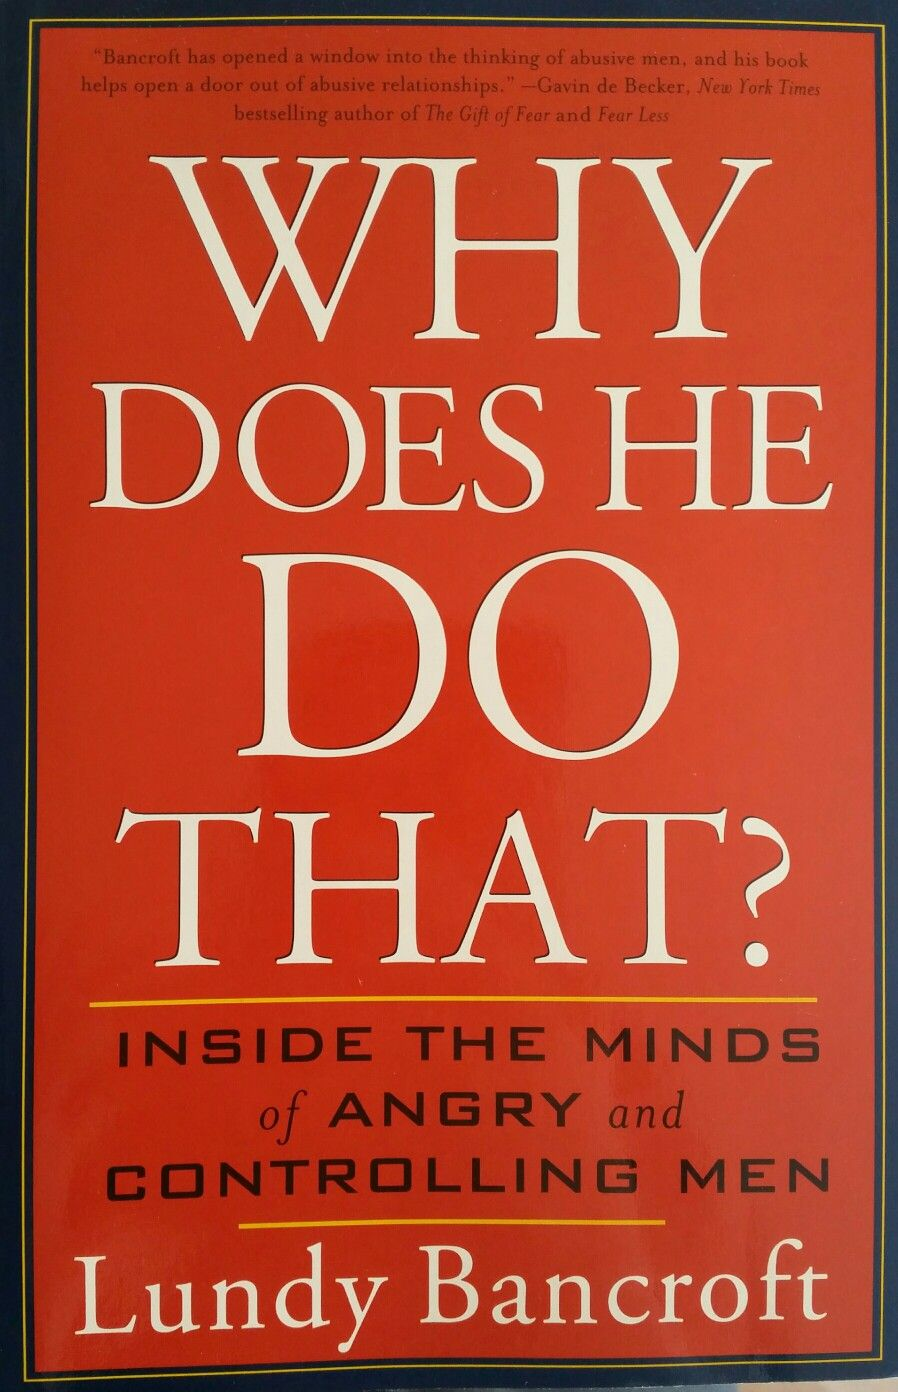 Why does he do that? Lundy Bancroft. Gender based violence. Domestic abuse.